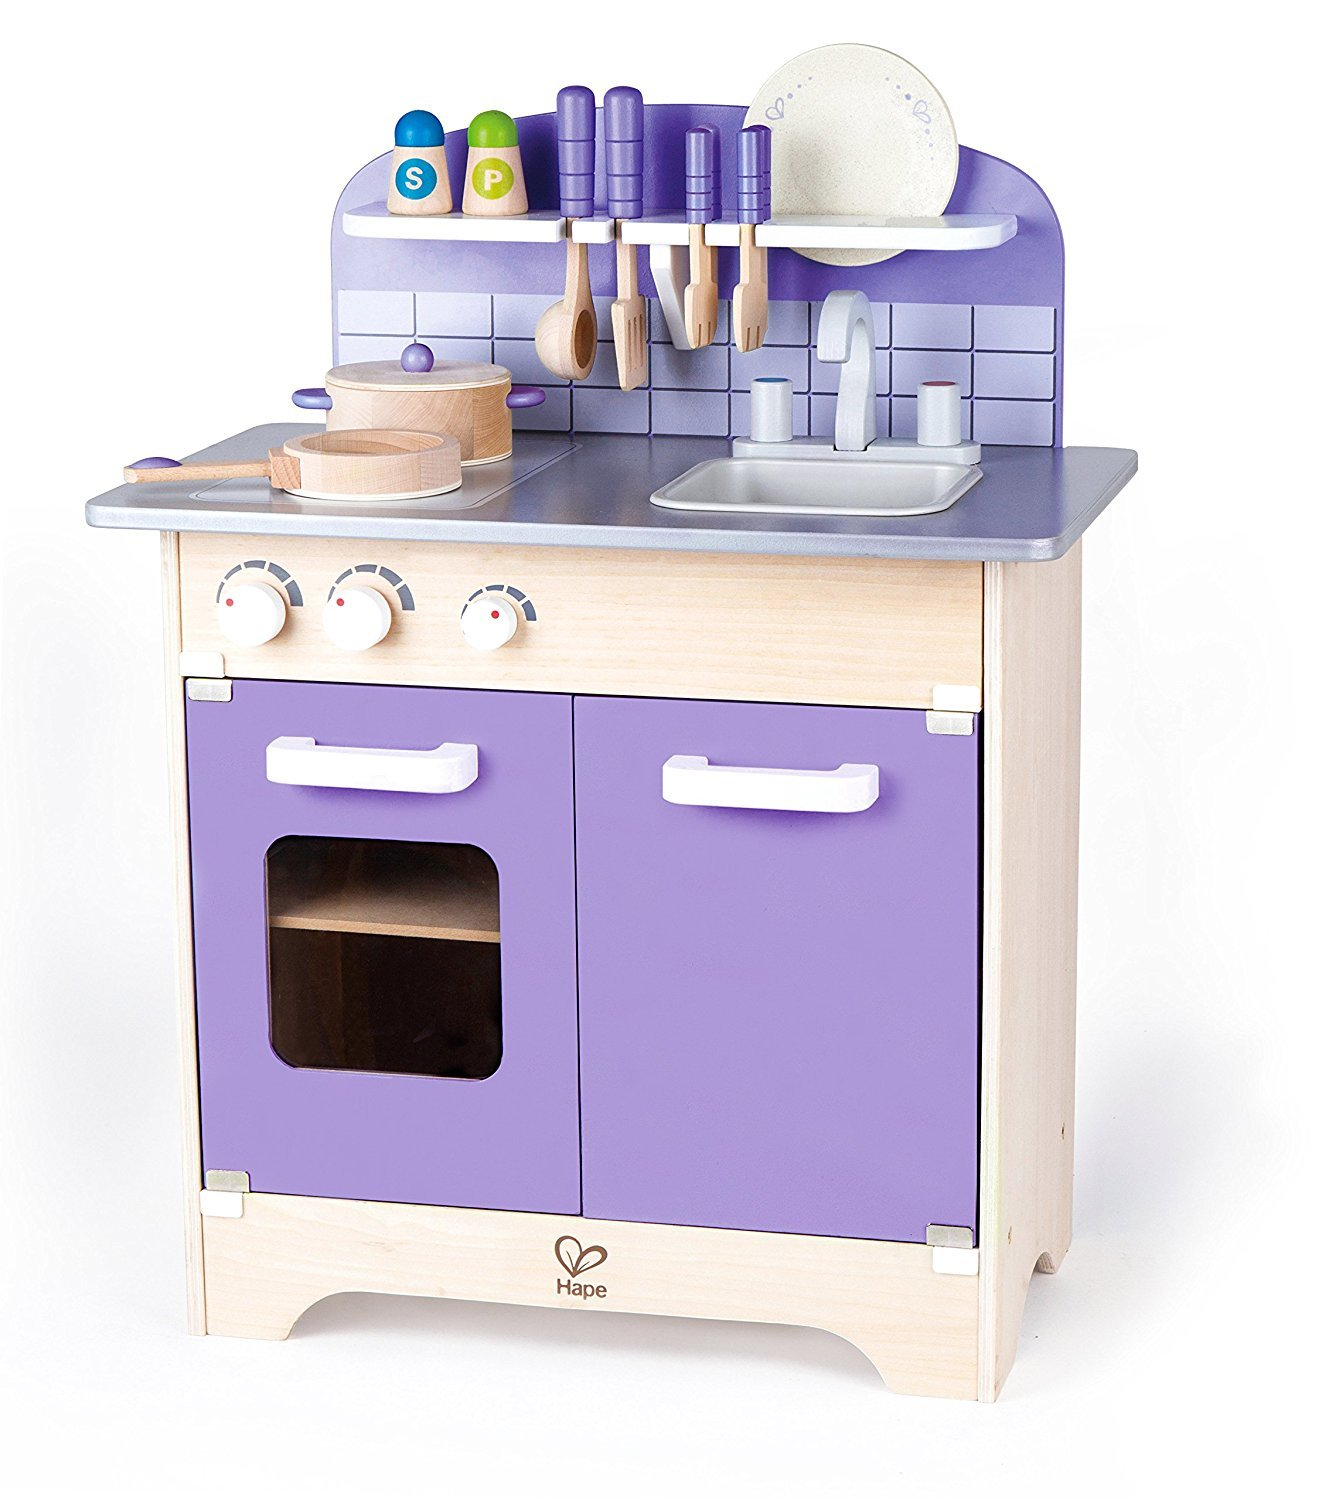 10 best wooden play kitchens for kids top toy kitchens for 2017. Black Bedroom Furniture Sets. Home Design Ideas